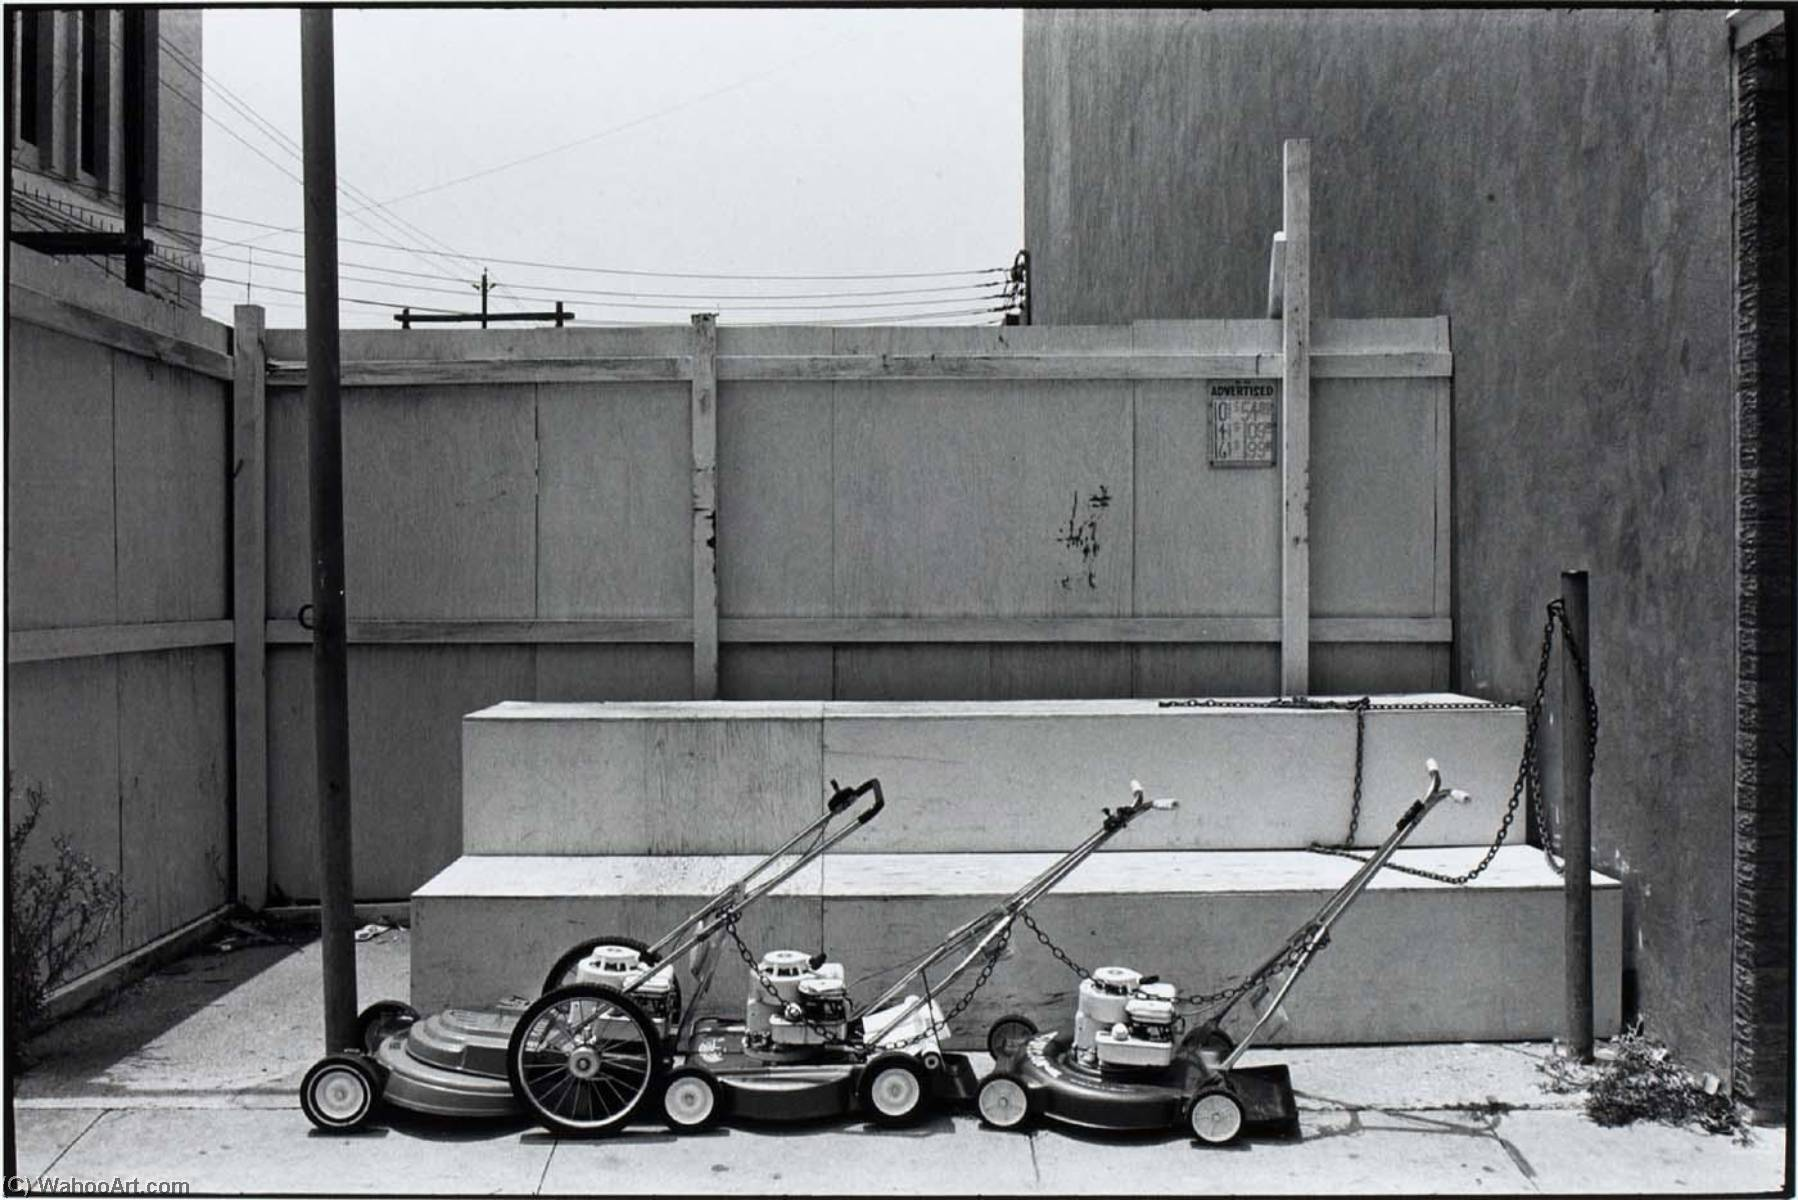 Untitled (Lawnmowers), Print by Paul Hester